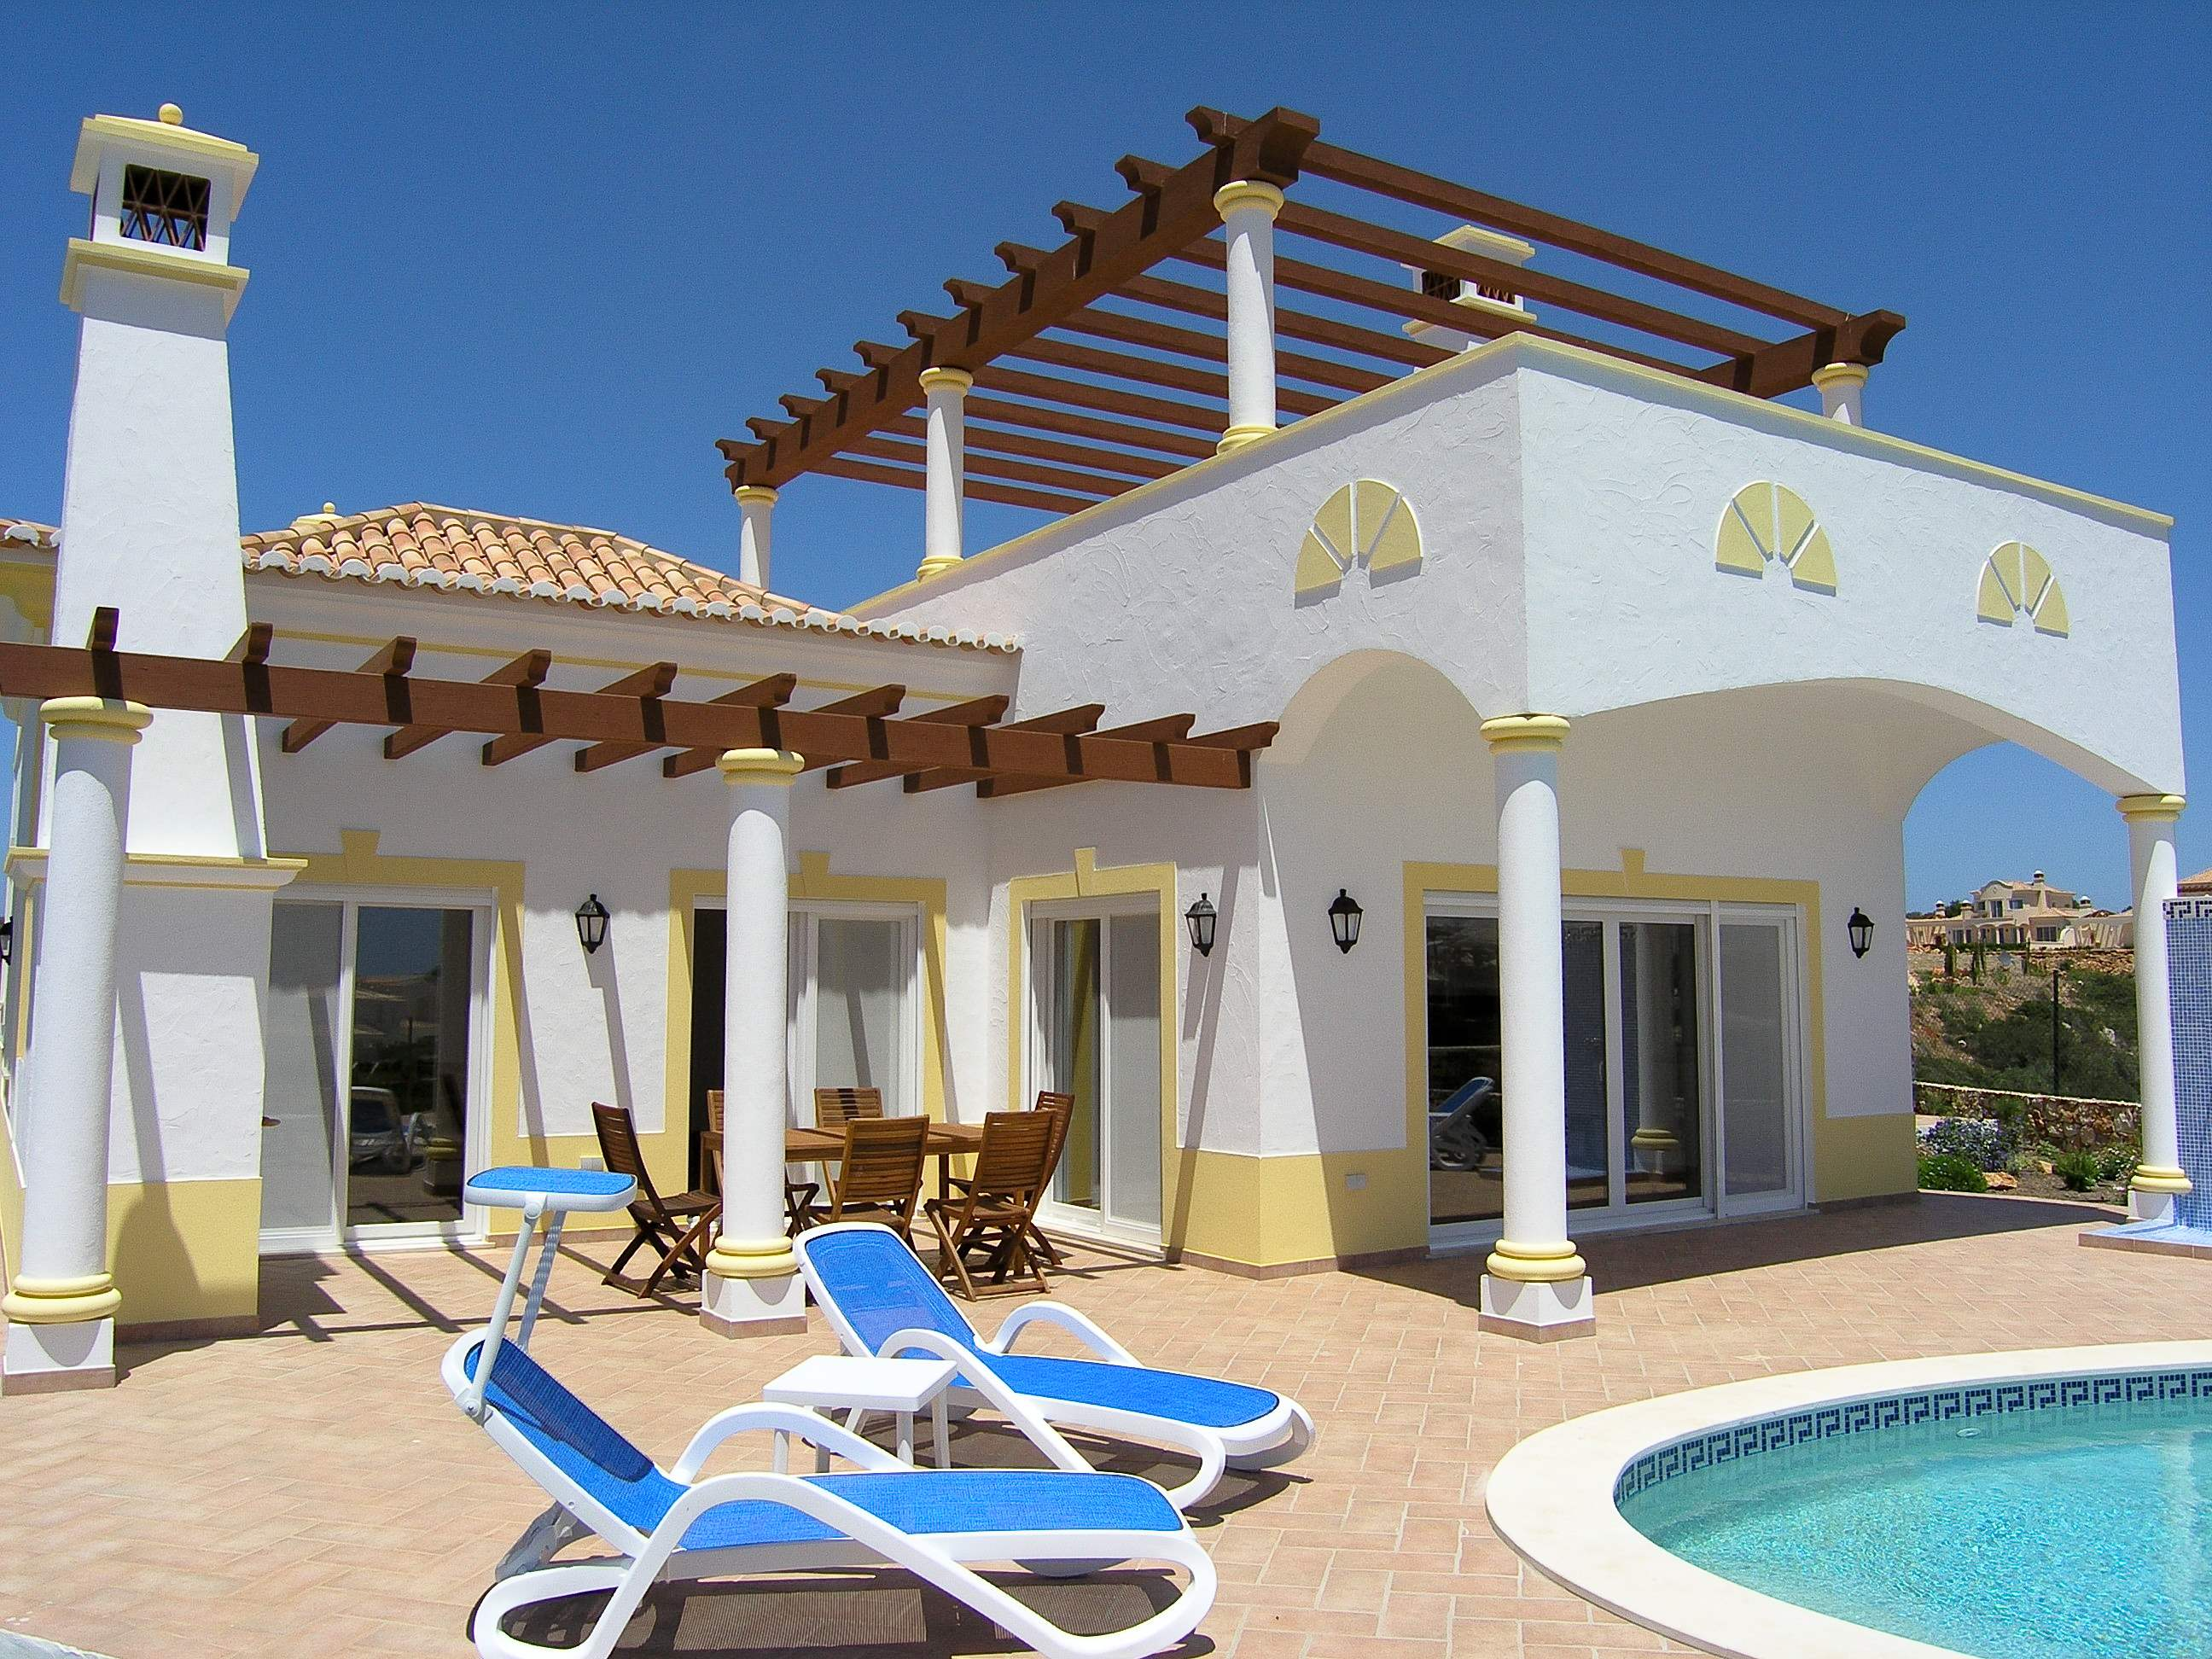 Martinhal Luxury Villa No.10, Three Bedroom Villa, 3 bedroom villa in Martinhal Sagres, Algarve Photo #2